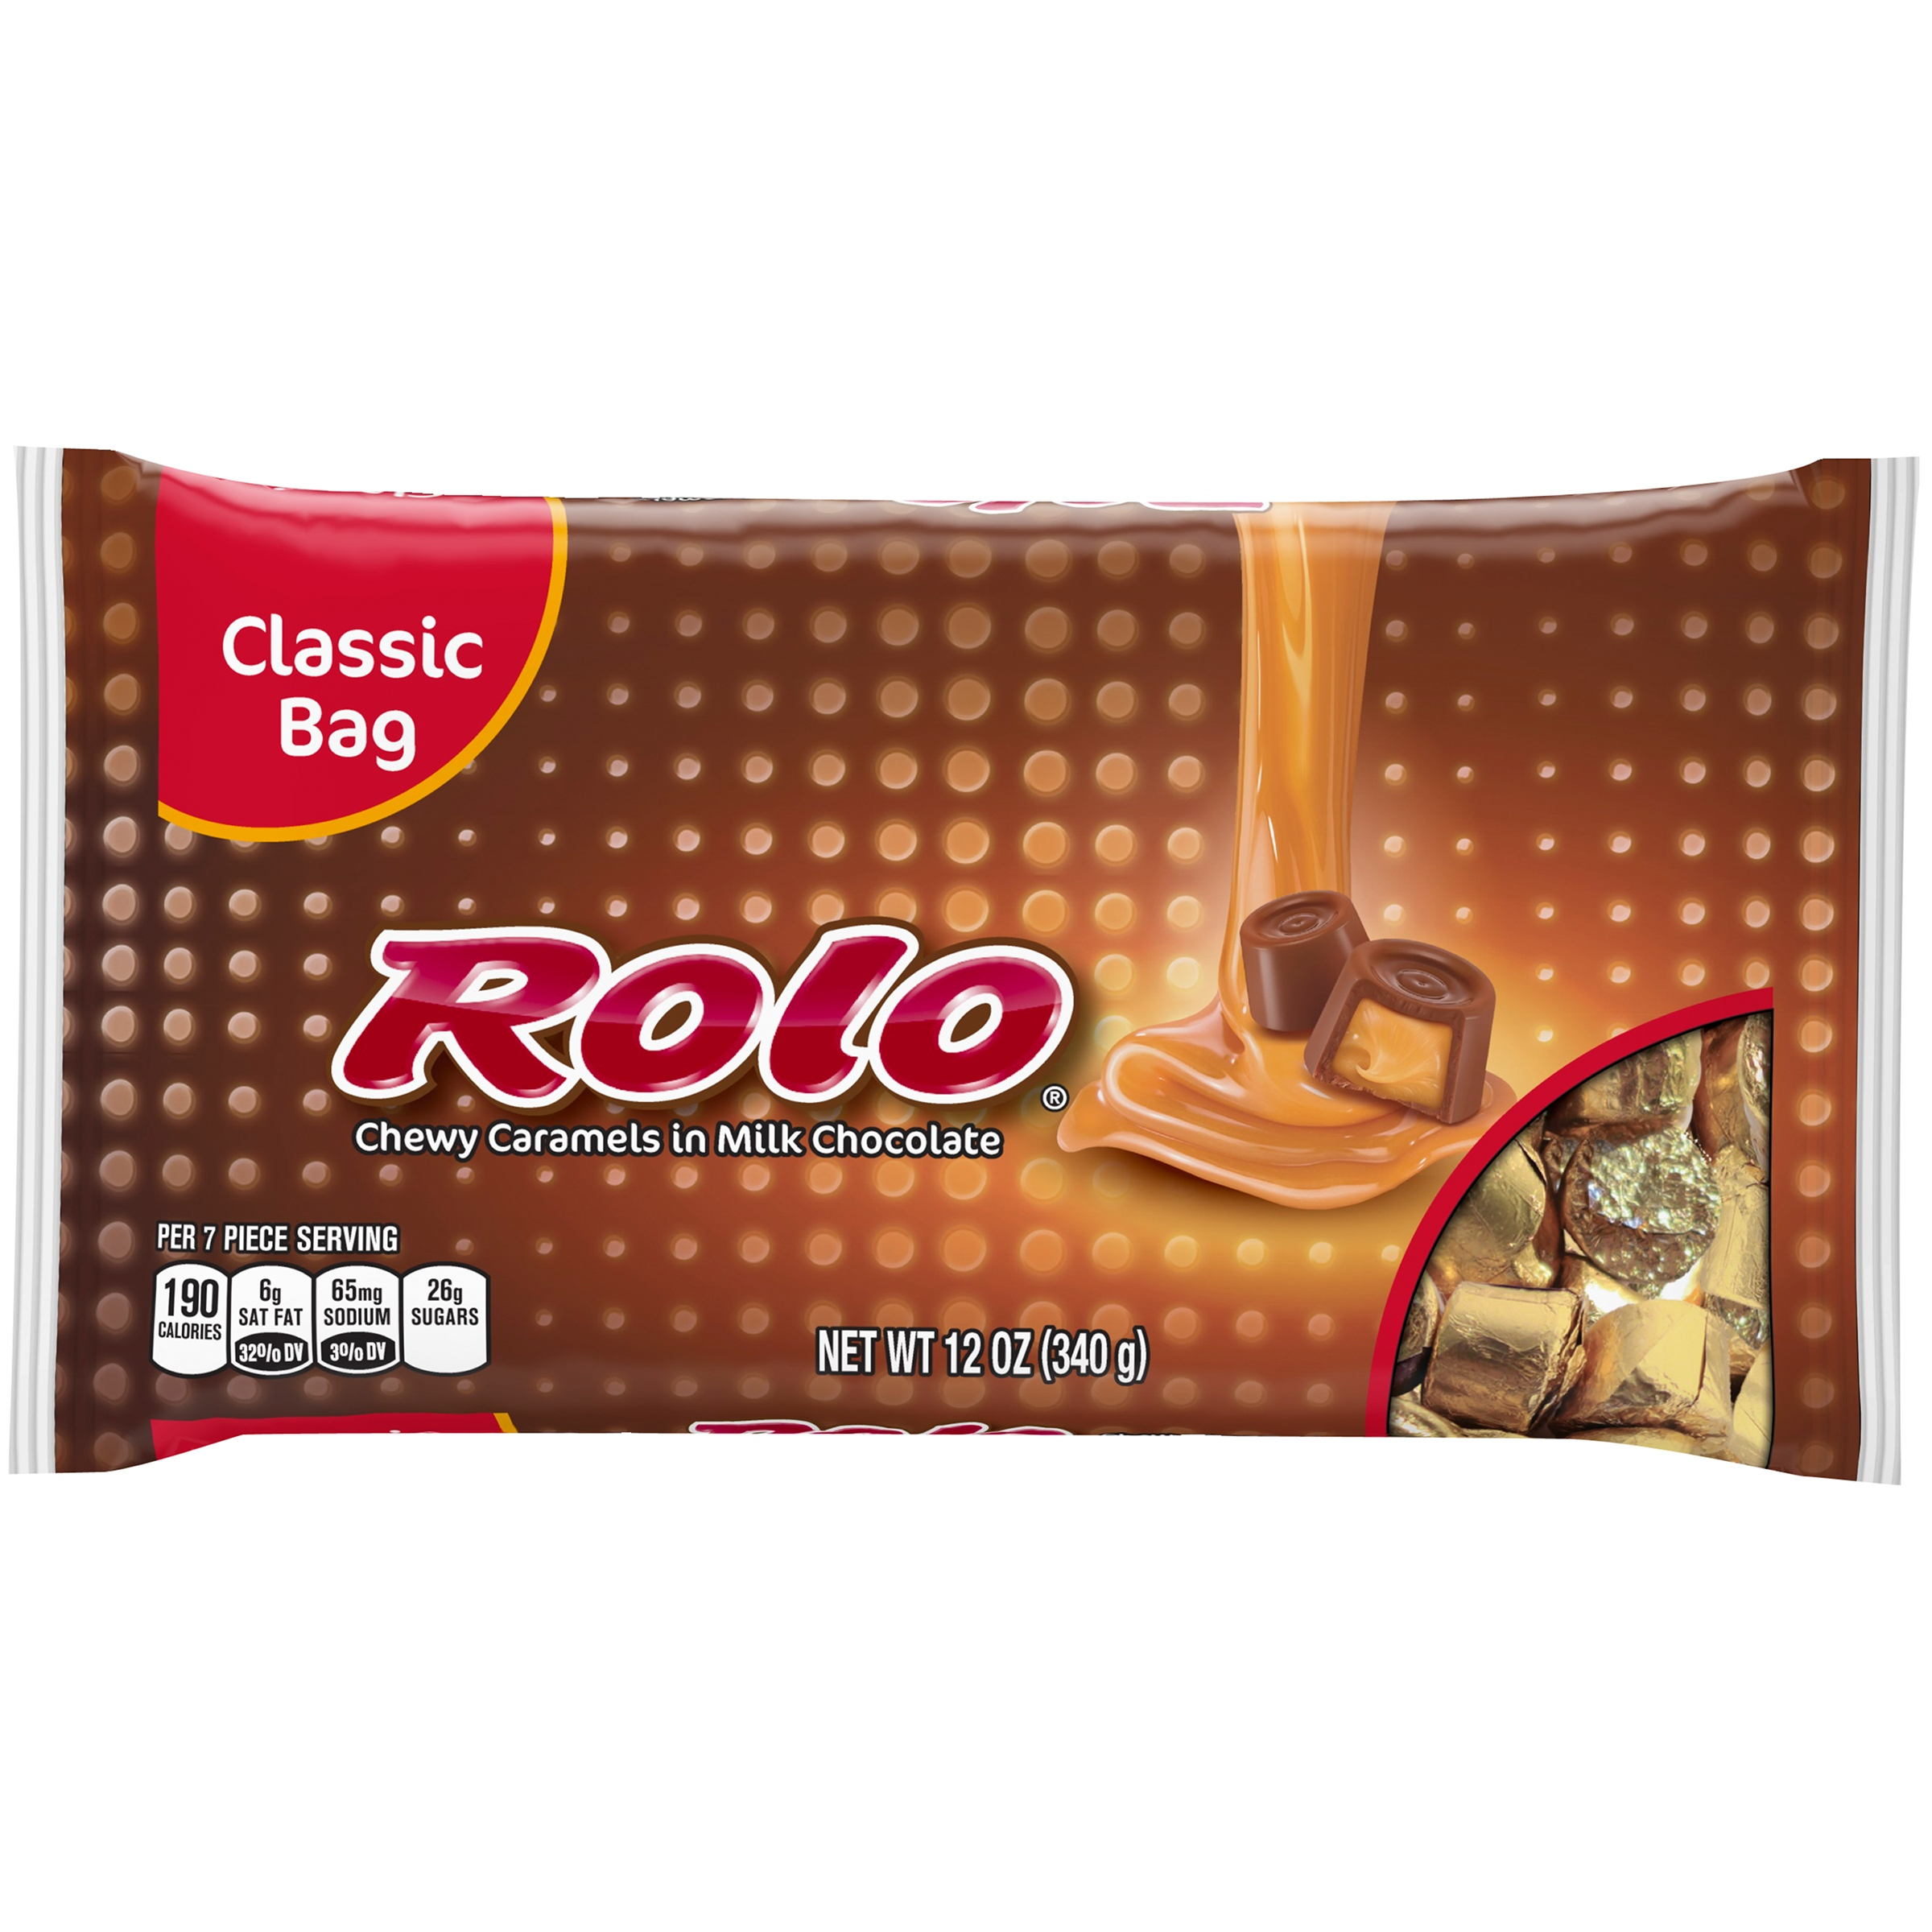 ROLO Chewy Caramels in Milk Chocolate, 12 oz by The Hershey Company